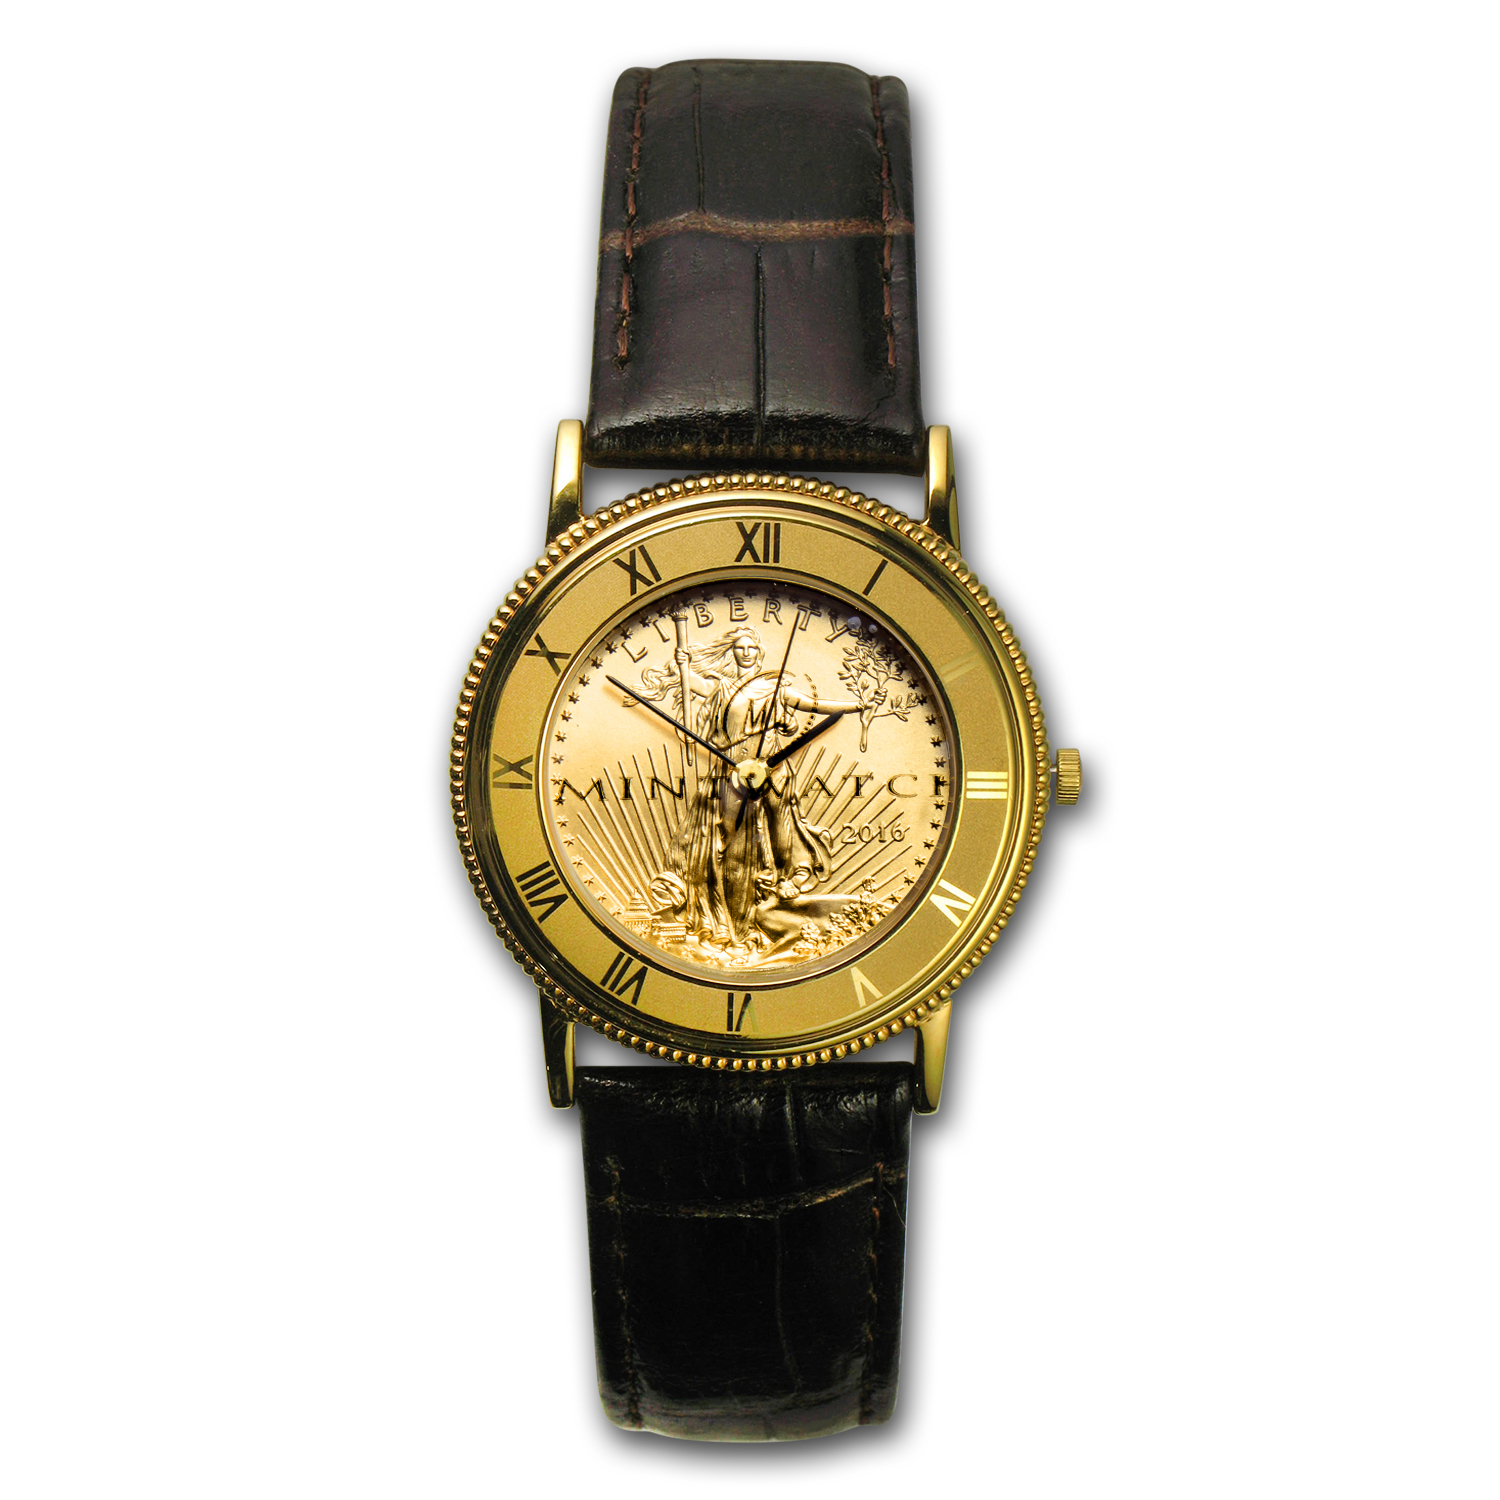 2016 1/10 oz Gold American Eagle Leather Band Watch